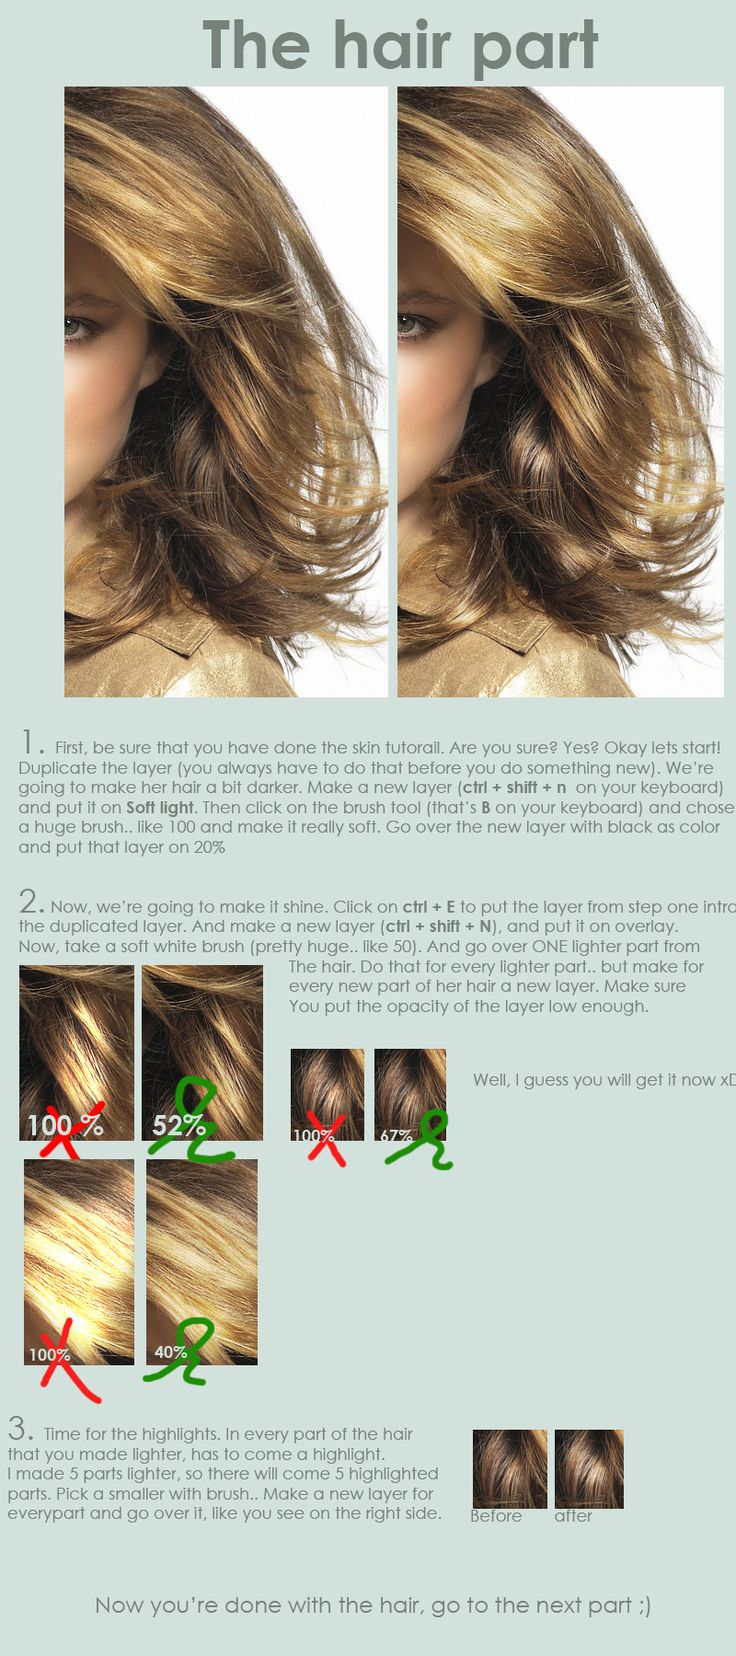 Hair Retouch : Hair retouch tutorial by ~EverythingsMagic on deviantART: Hair Retouch